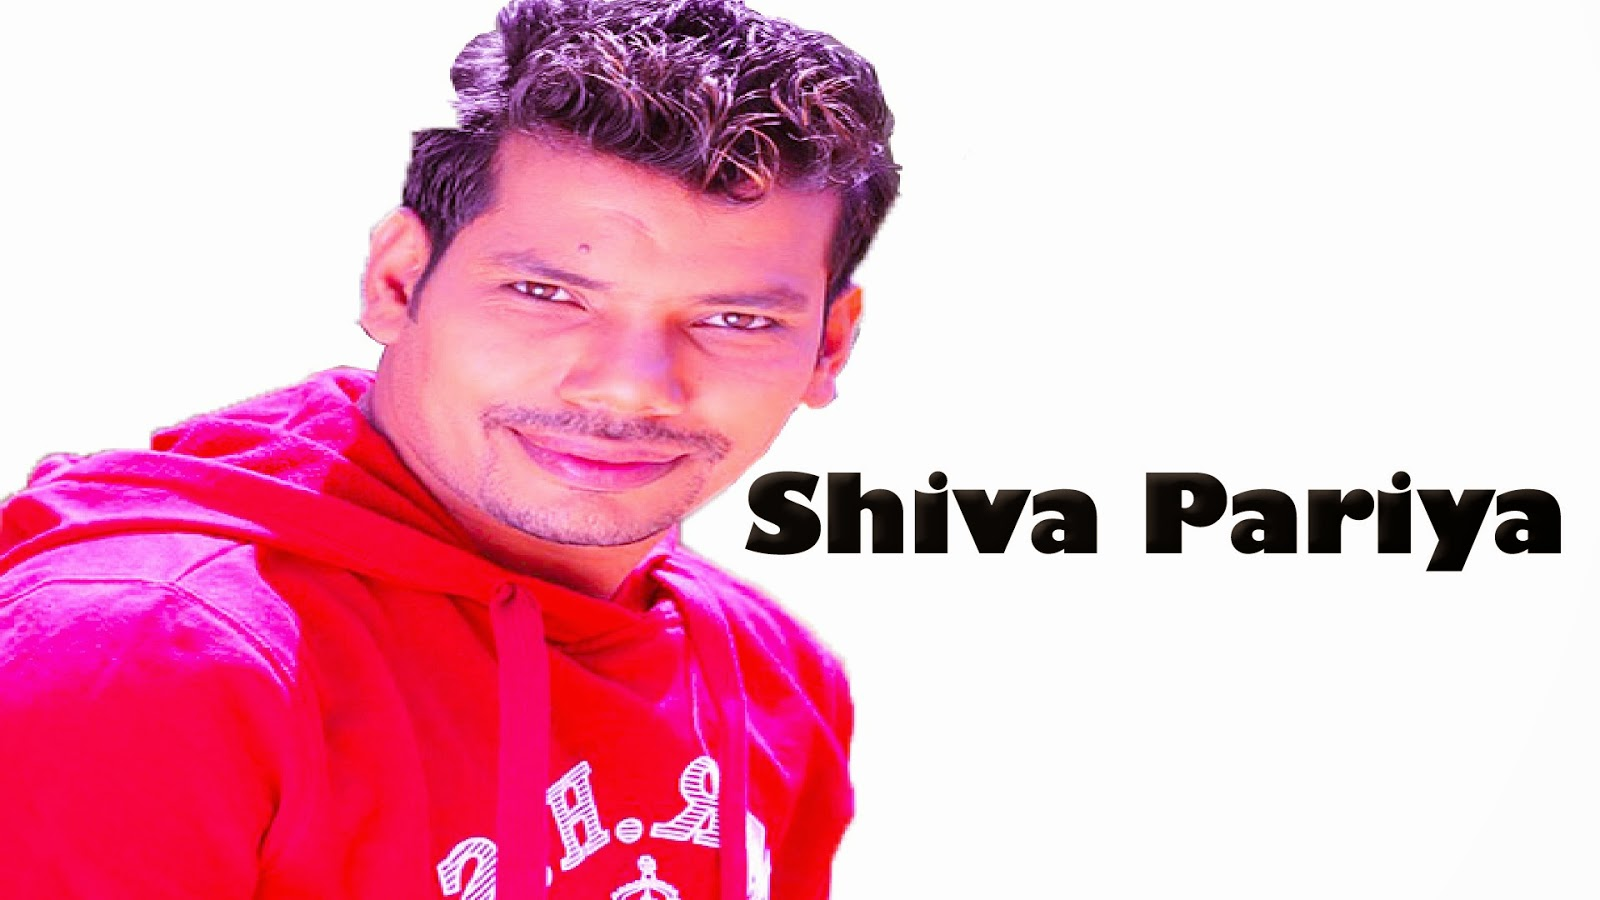 Shiva Pariyar - Latest MP3 Songs Collection Freee Download